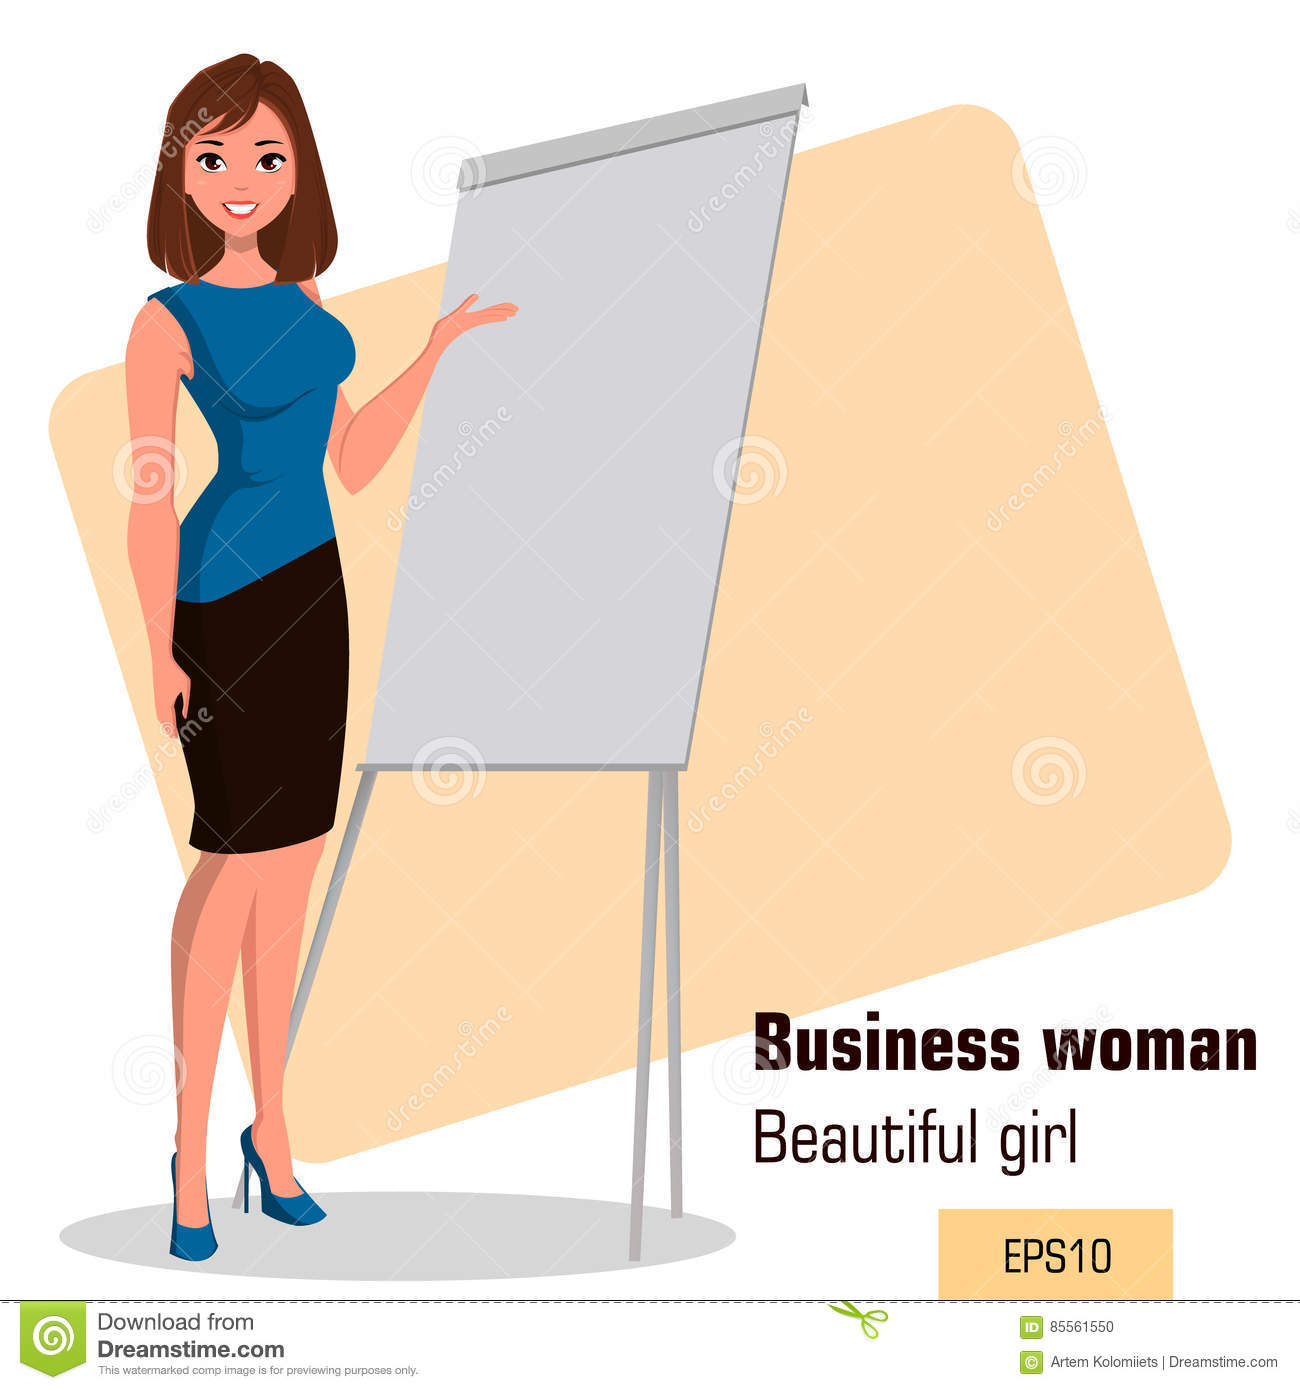 young cartoon businesswoman standing near office board making presentation beautiful girl presenting business plan